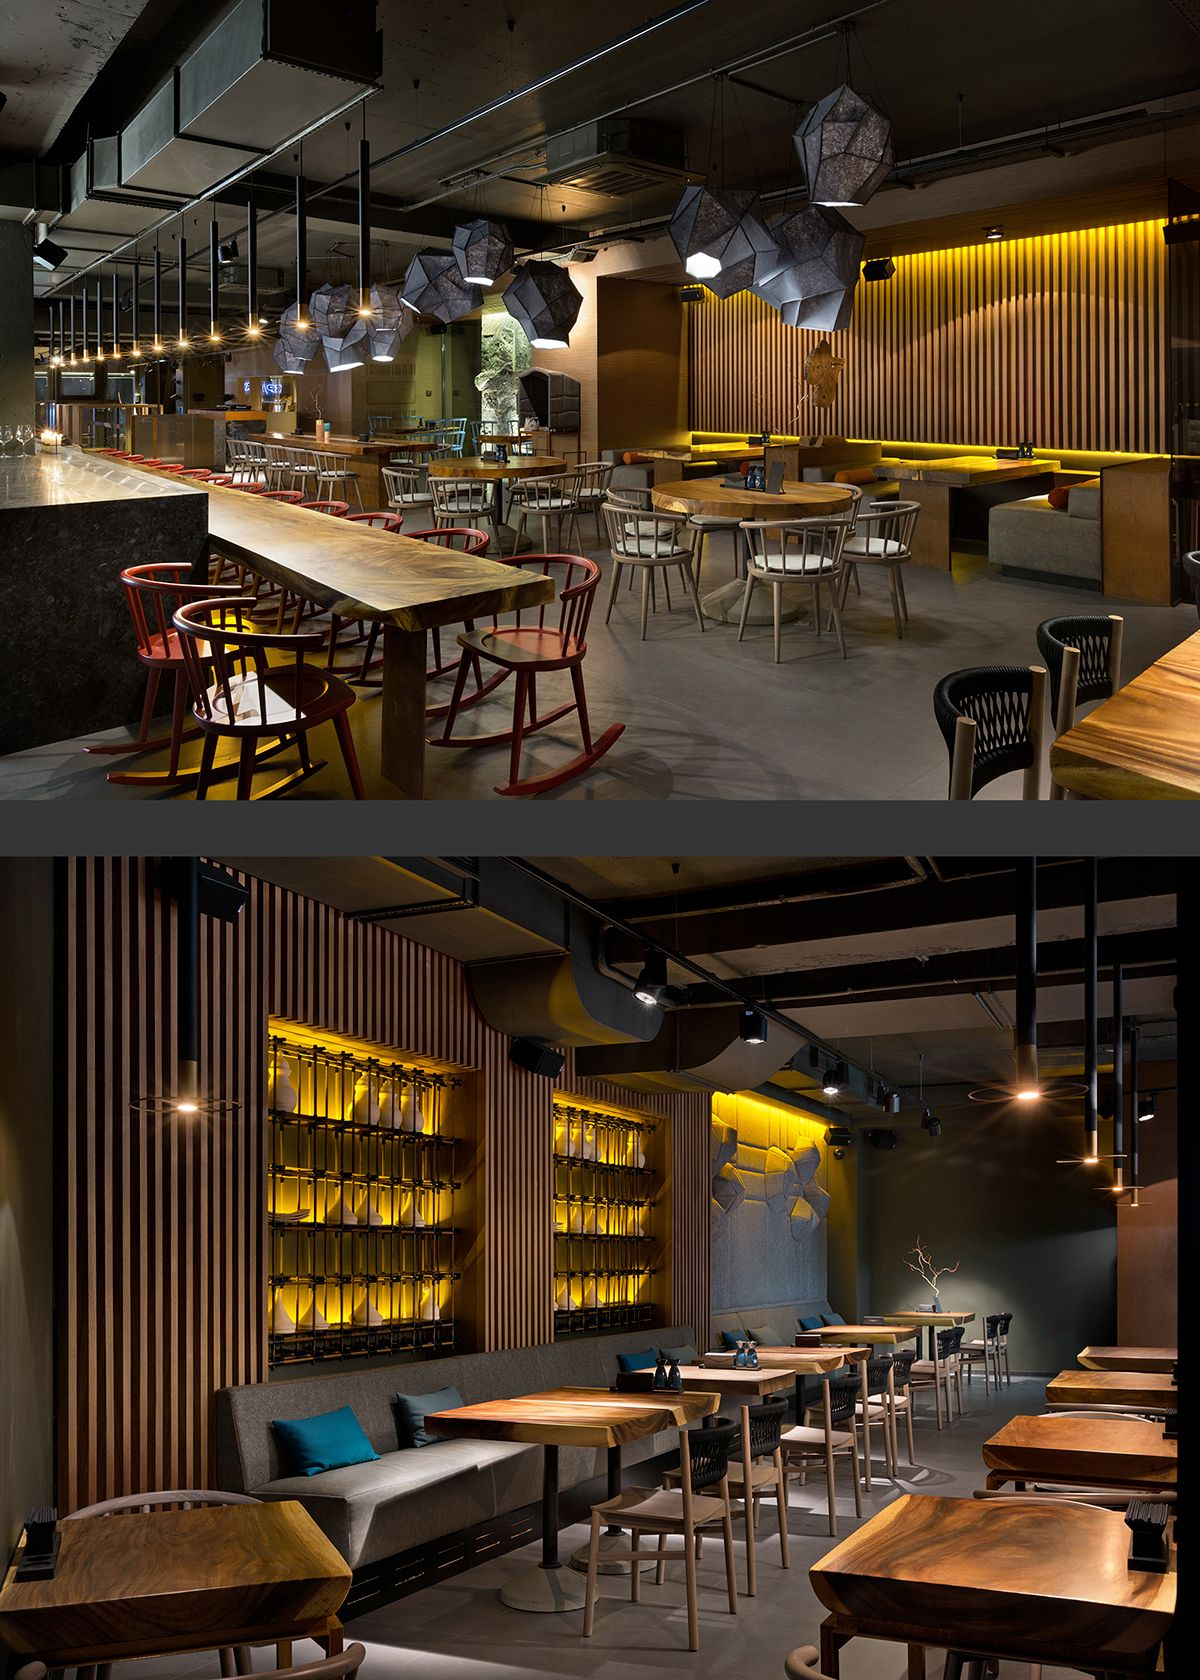 New Pan-Asian restaurant designed by YOD design studio ...